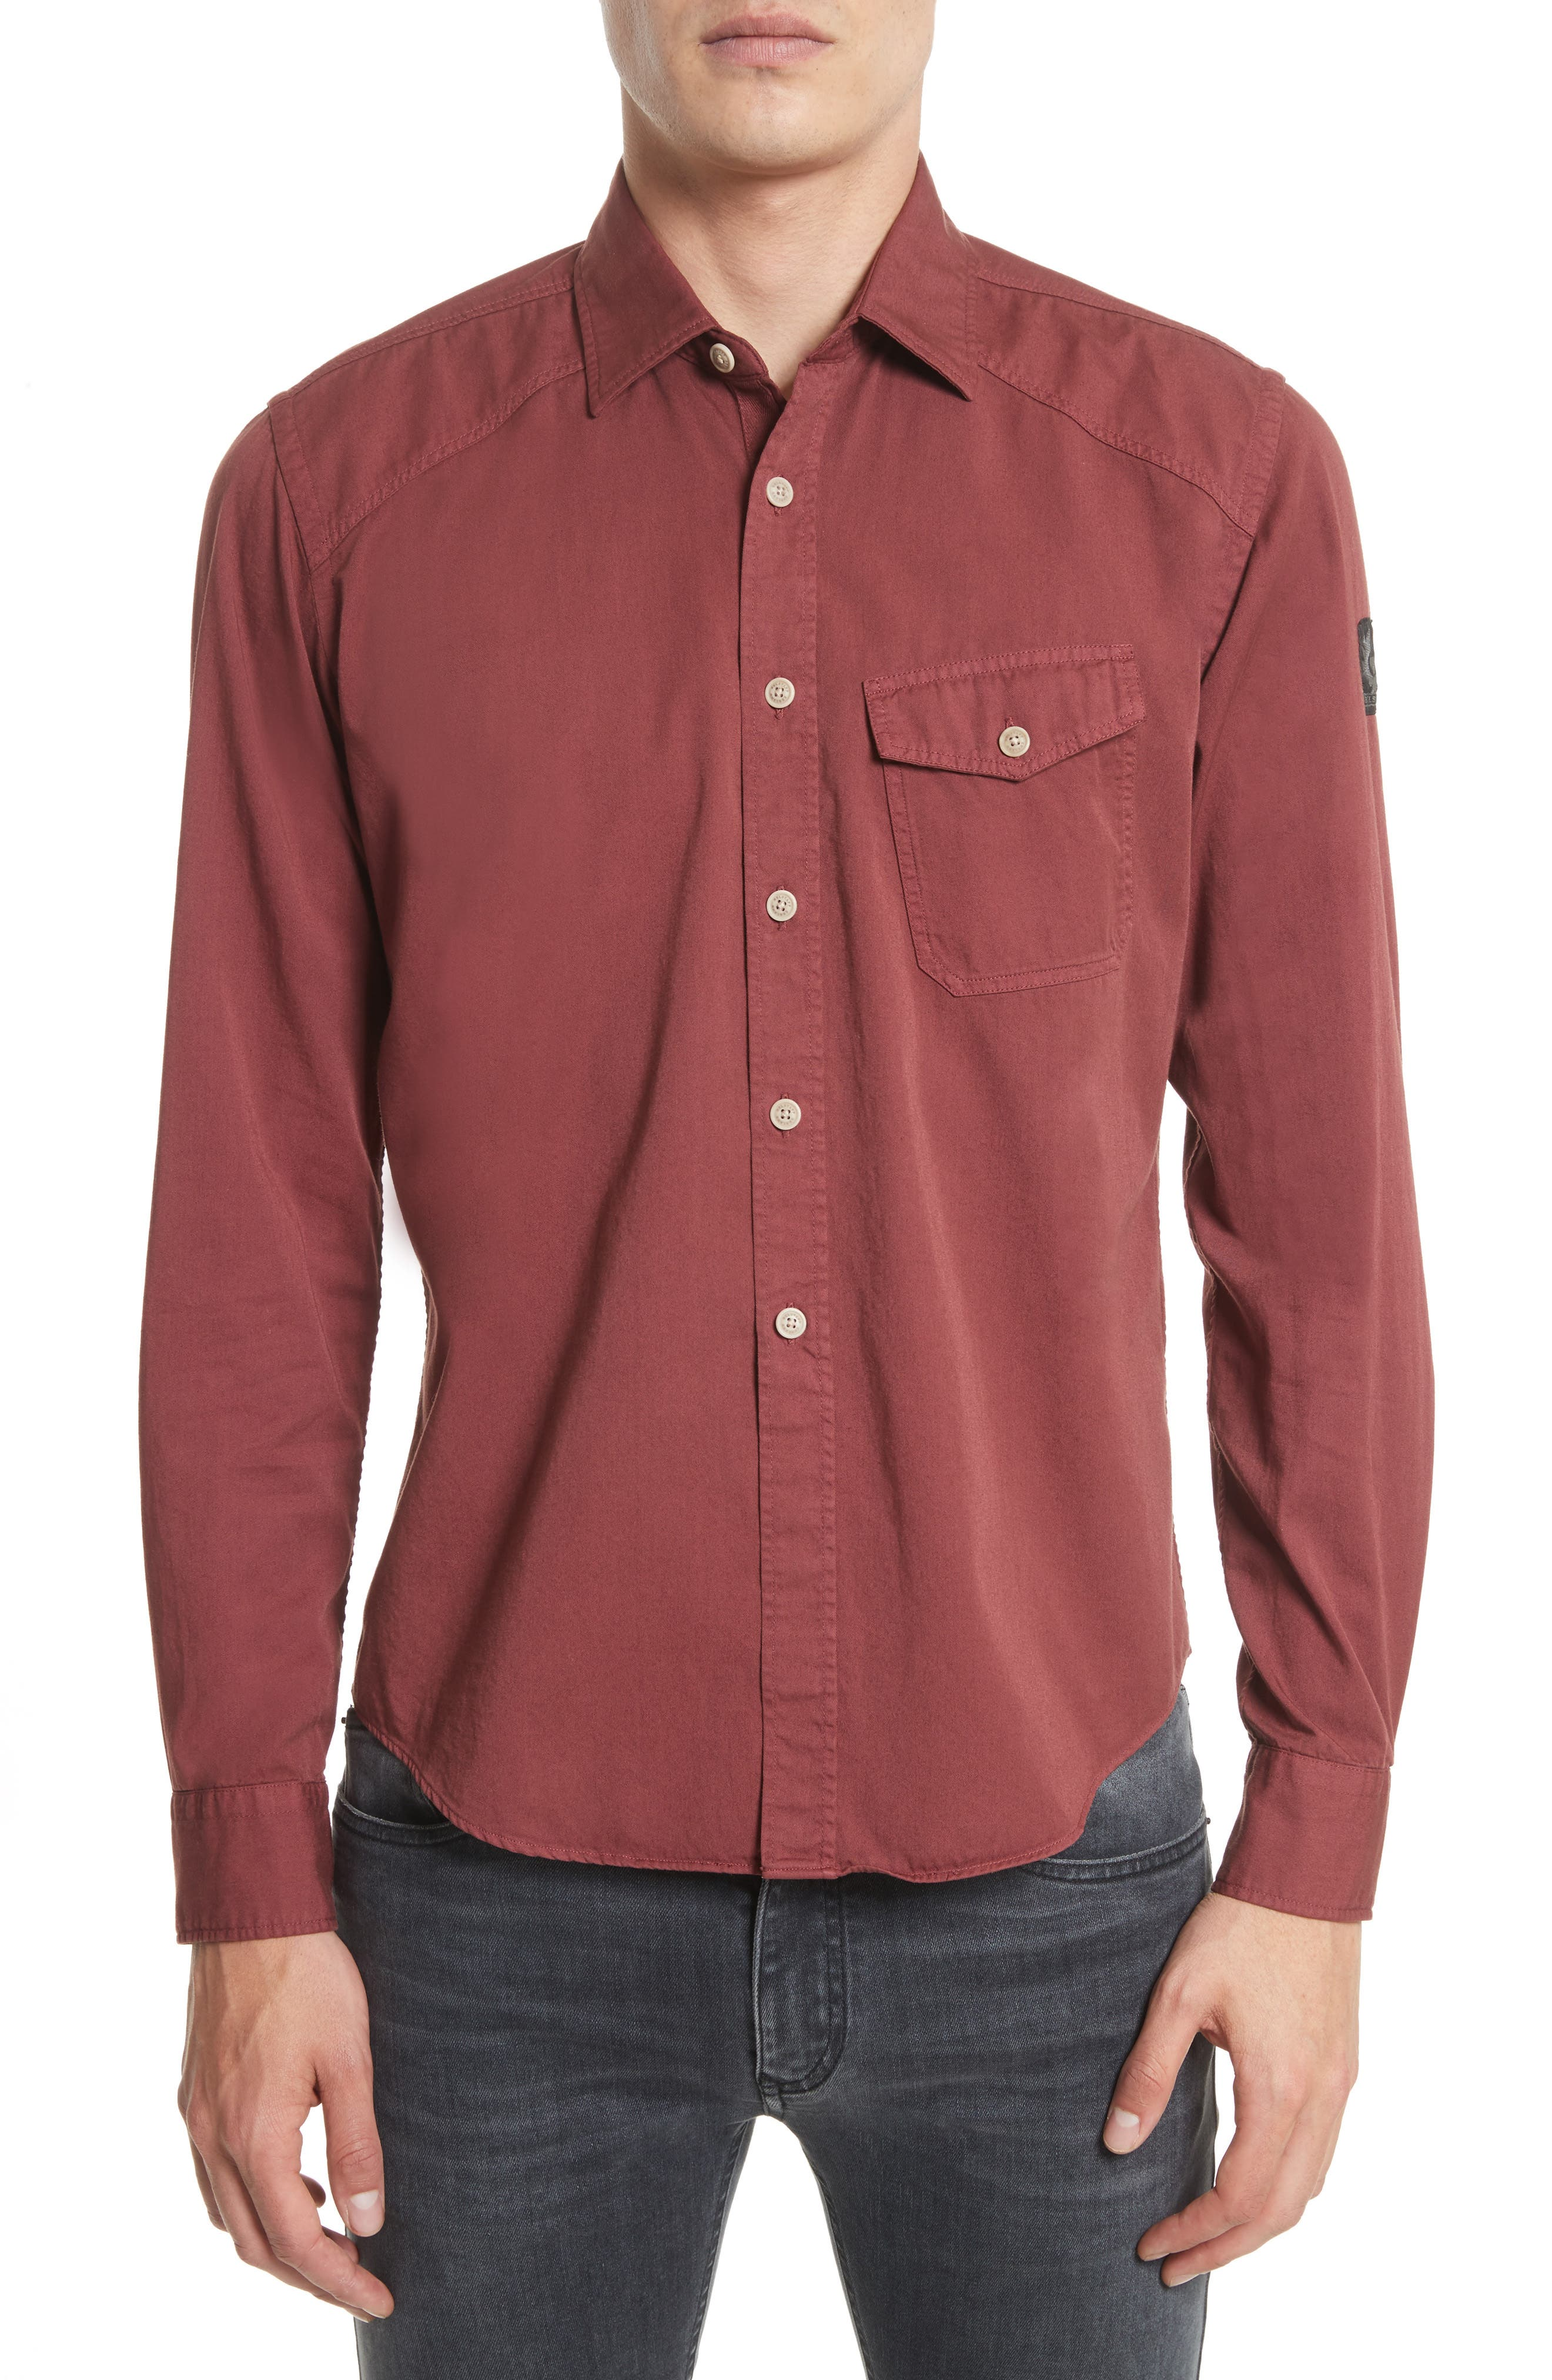 Alternate Image 1 Selected - Belstaff Steadway Sport Shirt